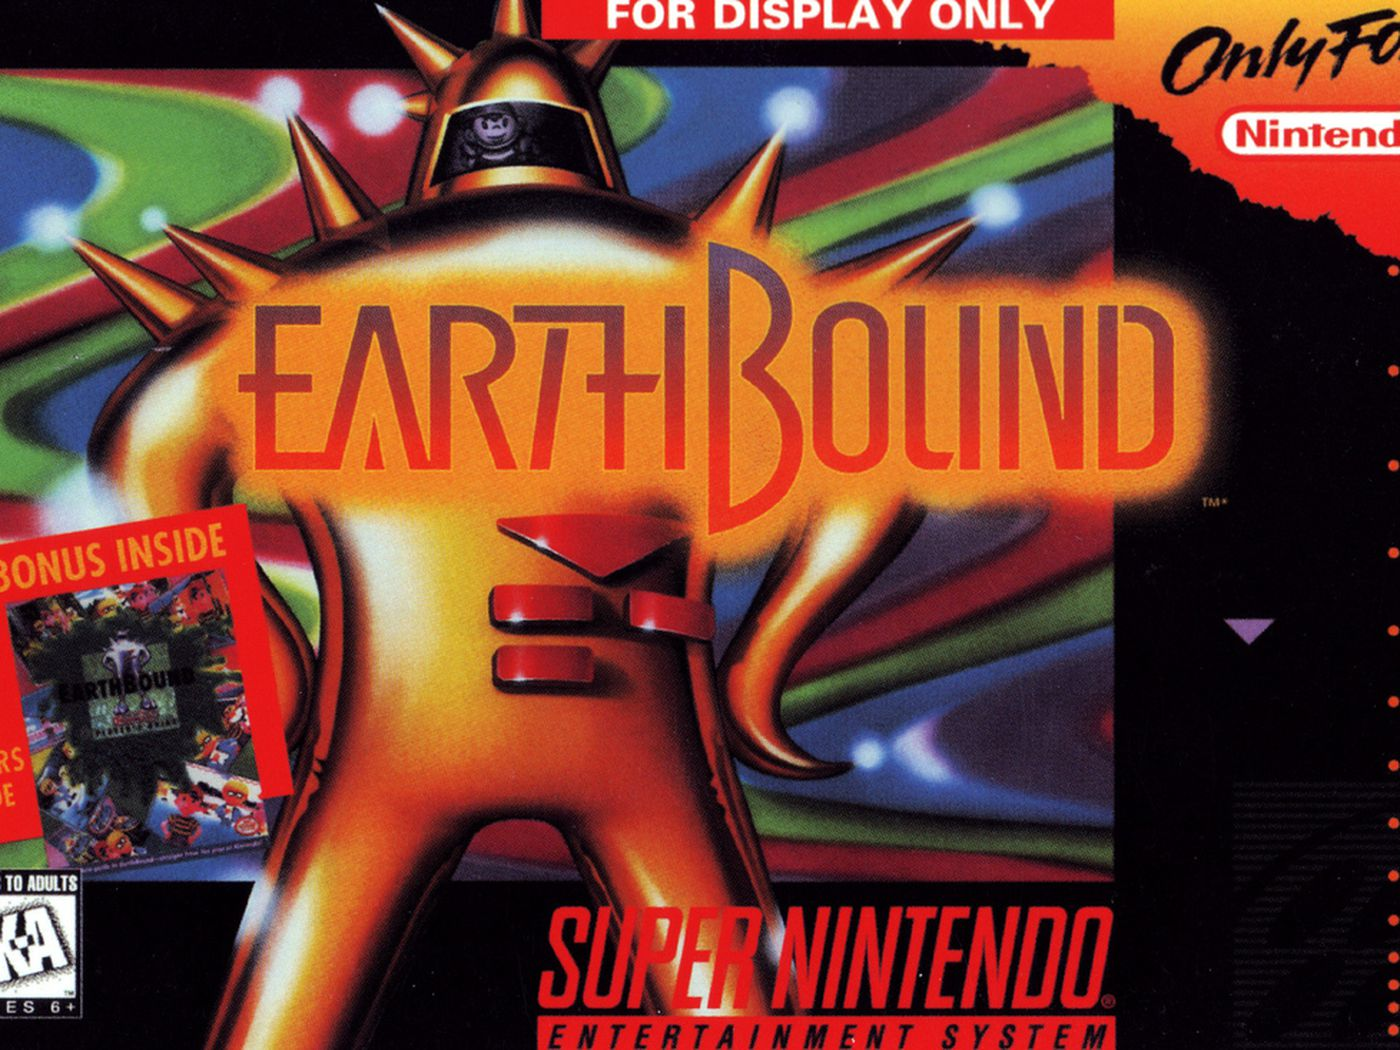 Why did Nintendo quash a book about EarthBound's development